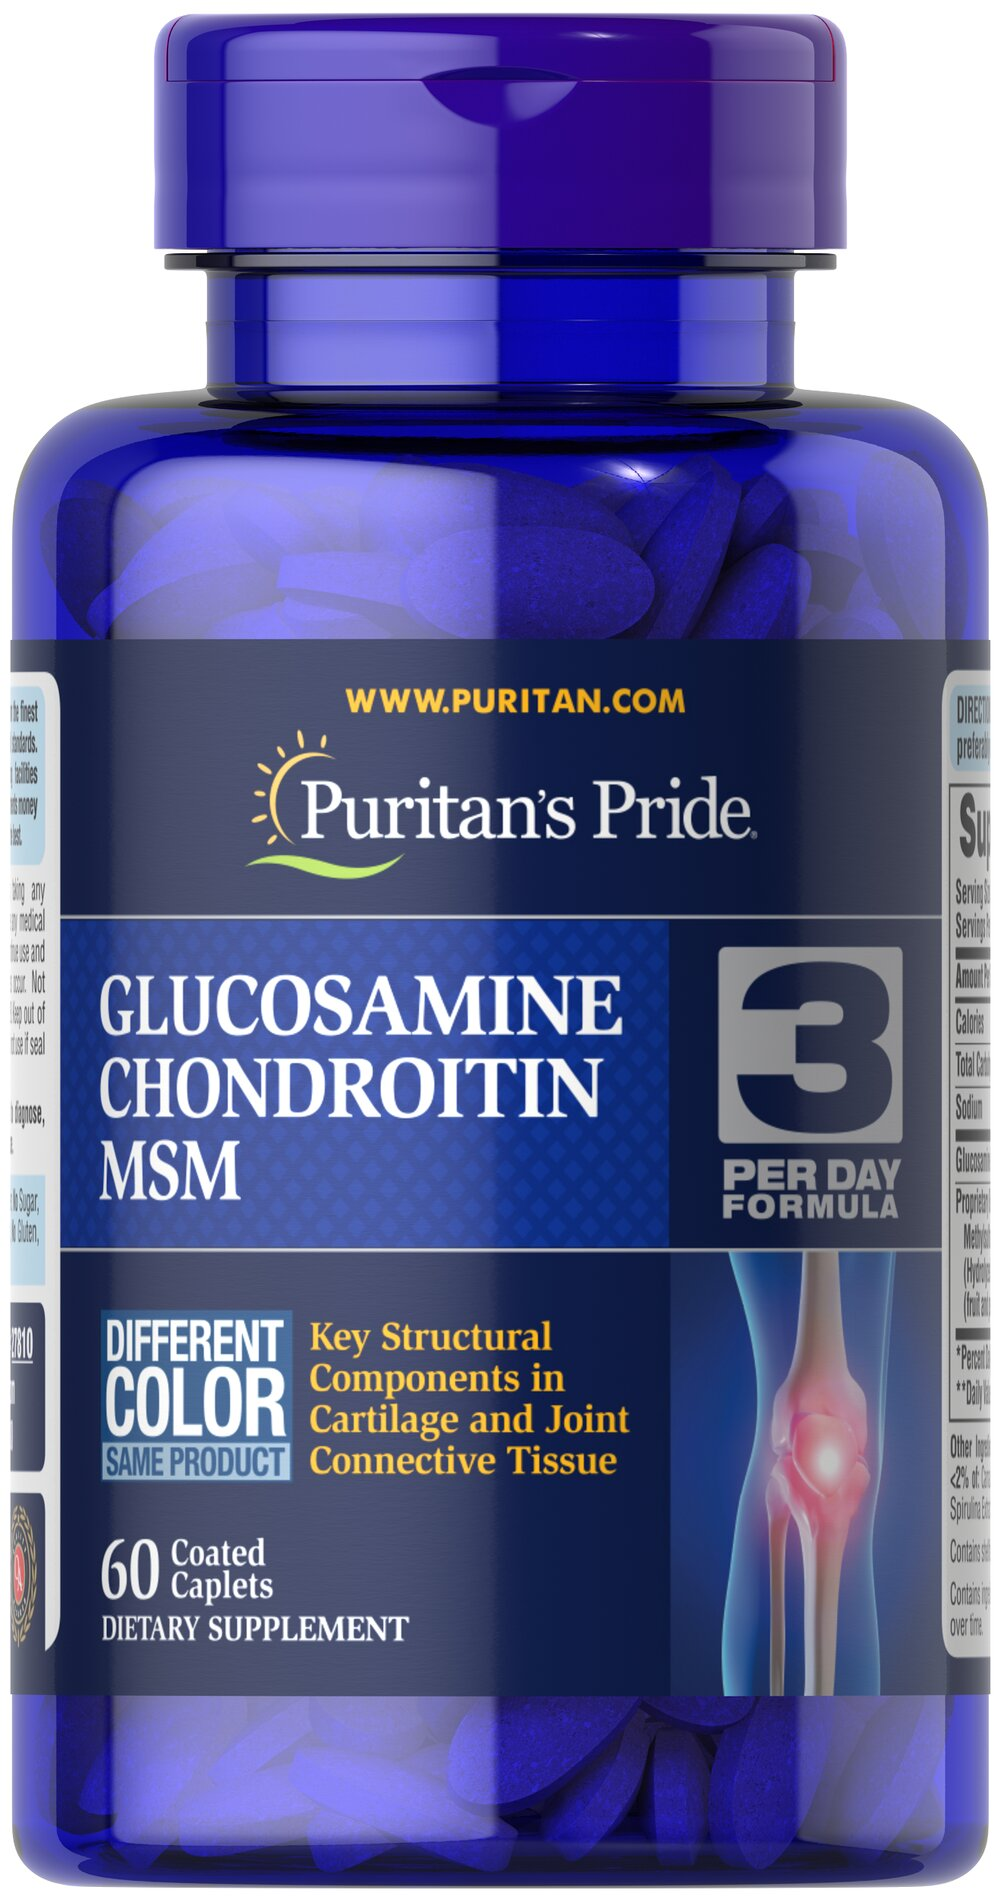 Double Strength Glucosamine, Chondroitin & MSM Joint Soother® <p>Combines the top three structural components found in popular joint support products — Glucosamine, Chondroitin and MSM — with amino and herbal support from Collagen and Boswellia Serrata**</p><p>This high-quality formula delivers 1,500 mg of Glucosamine HCl to help nourish and support cartilage, and helps with occasional joint stress due to exercise or physical activity**</p> 60 Caplets  $13.58